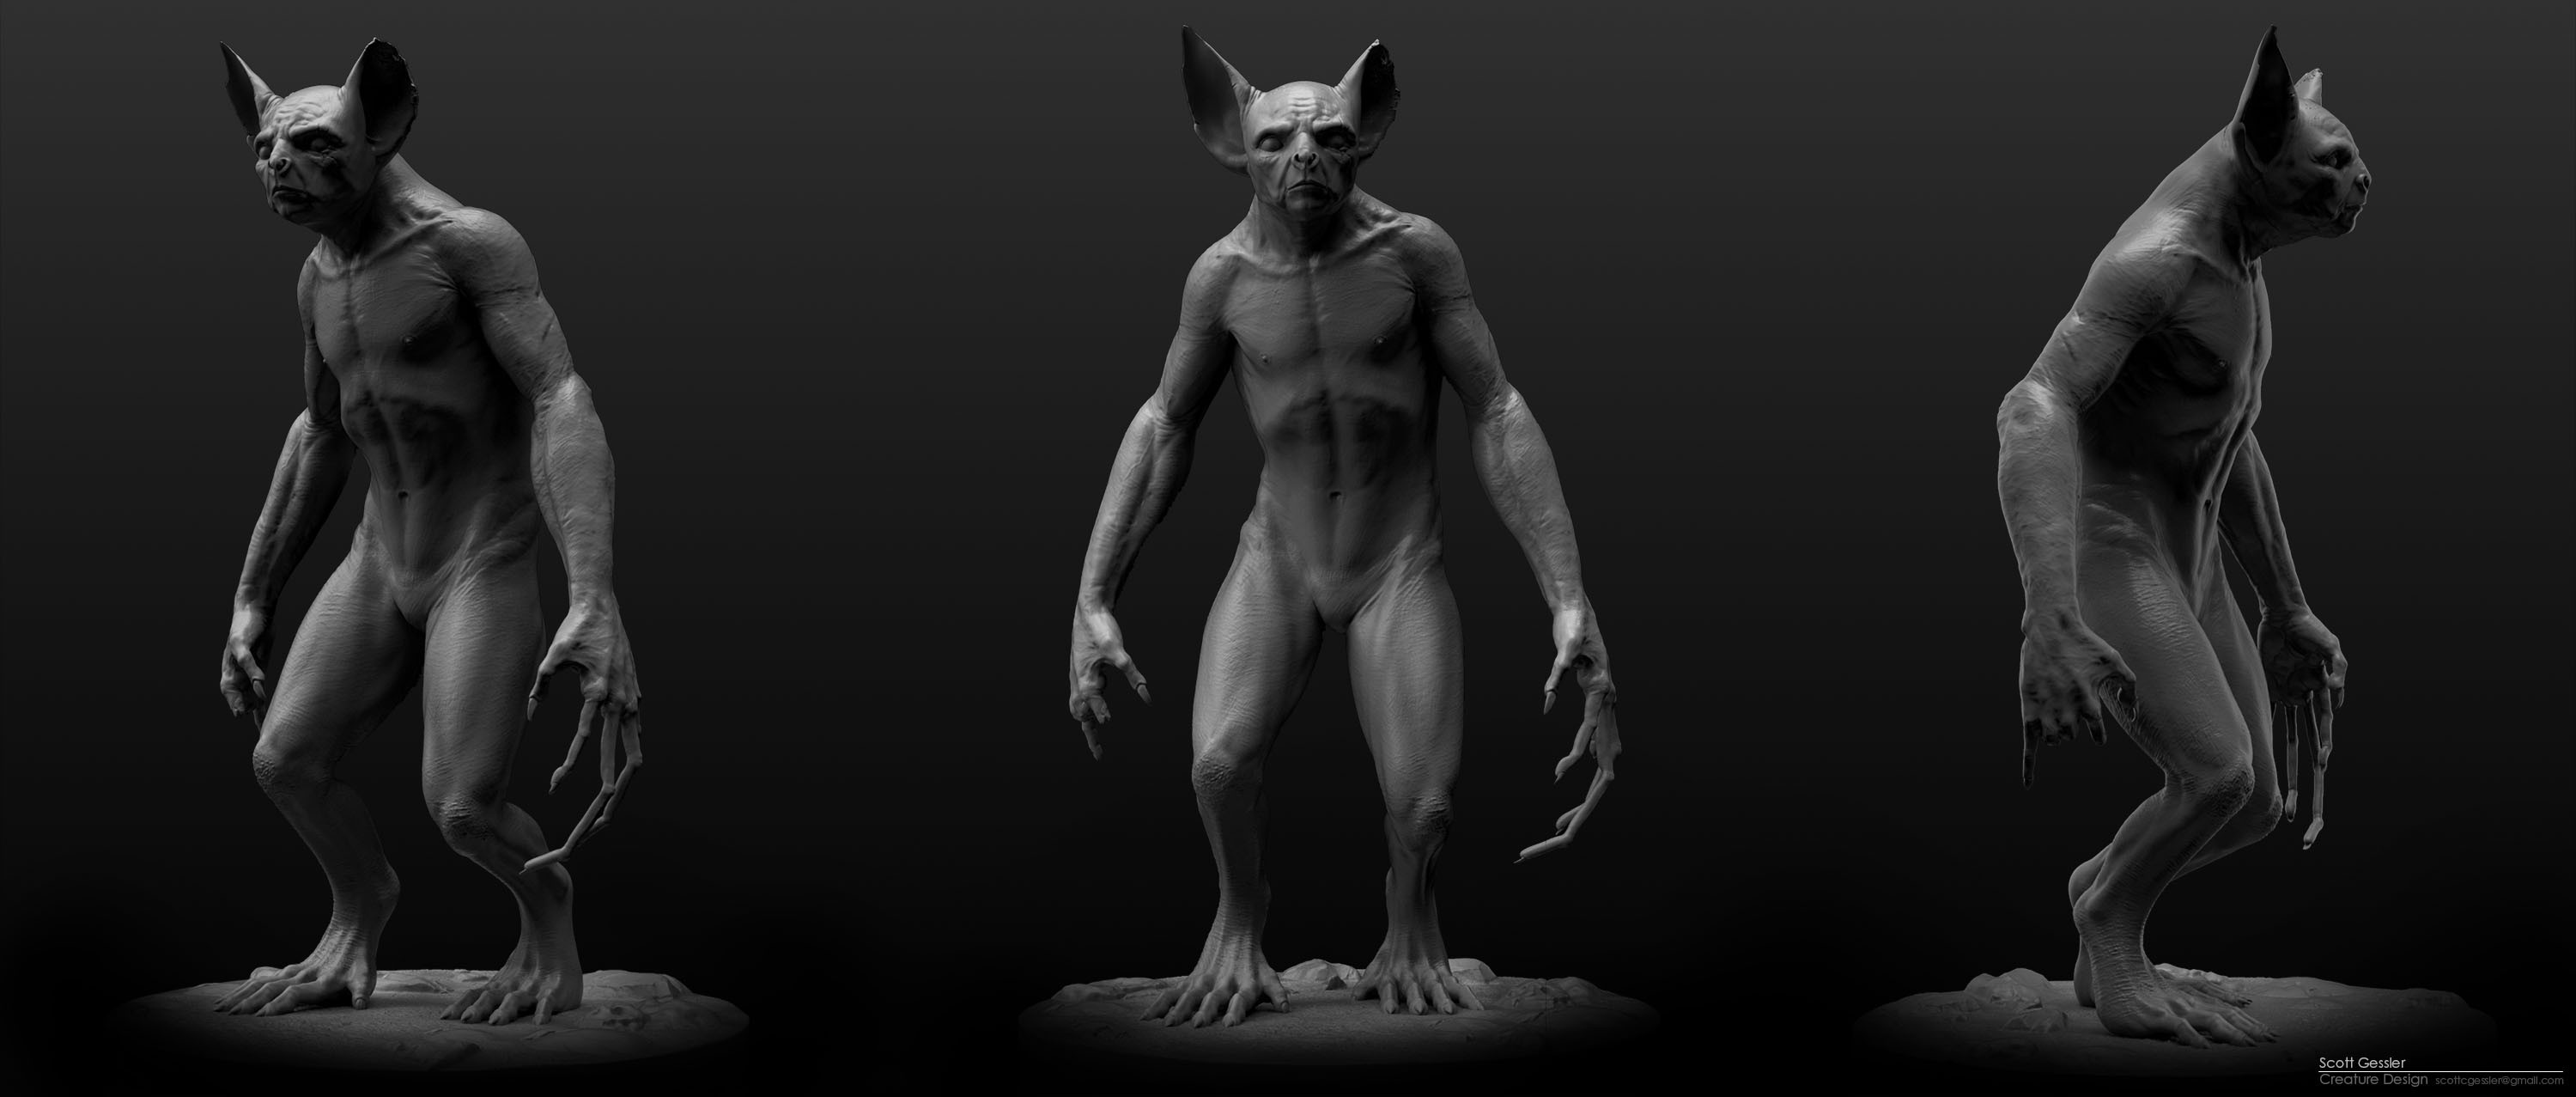 Sculpted in Zbrush